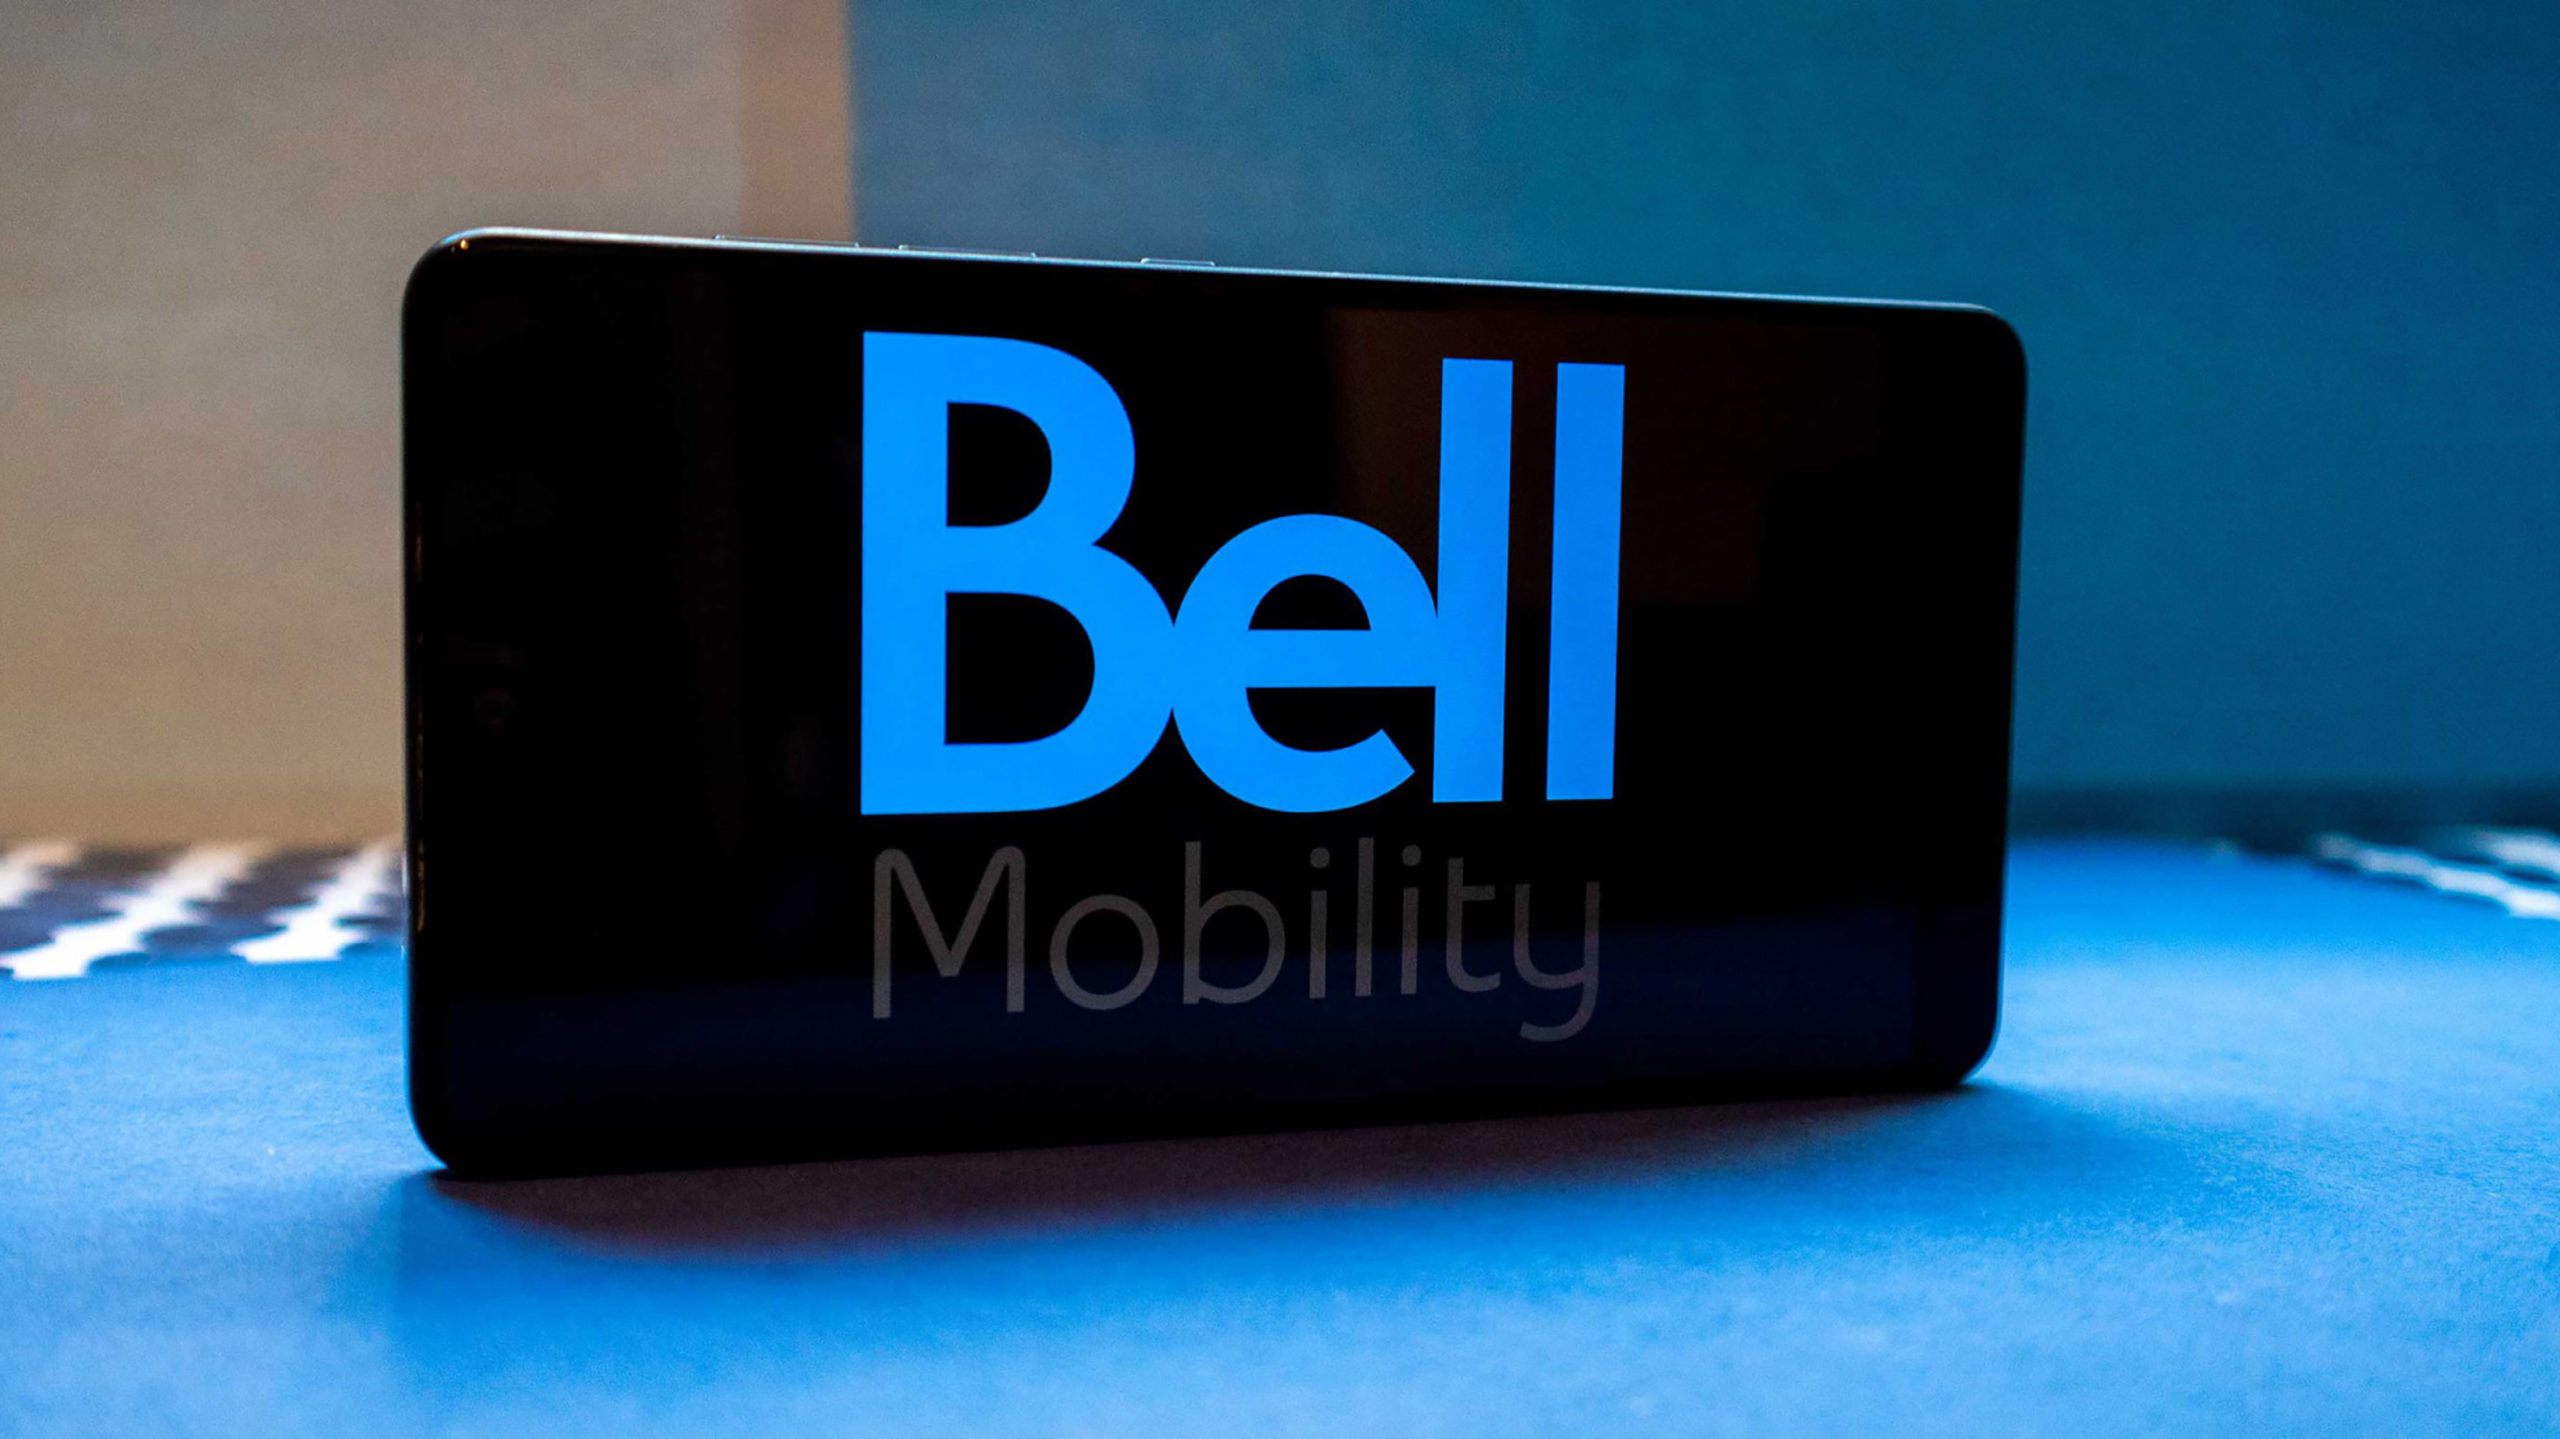 Bell Providing An Extra 10gb Of Data To Customers With Turbo Hub Turbo Stick And Mifi